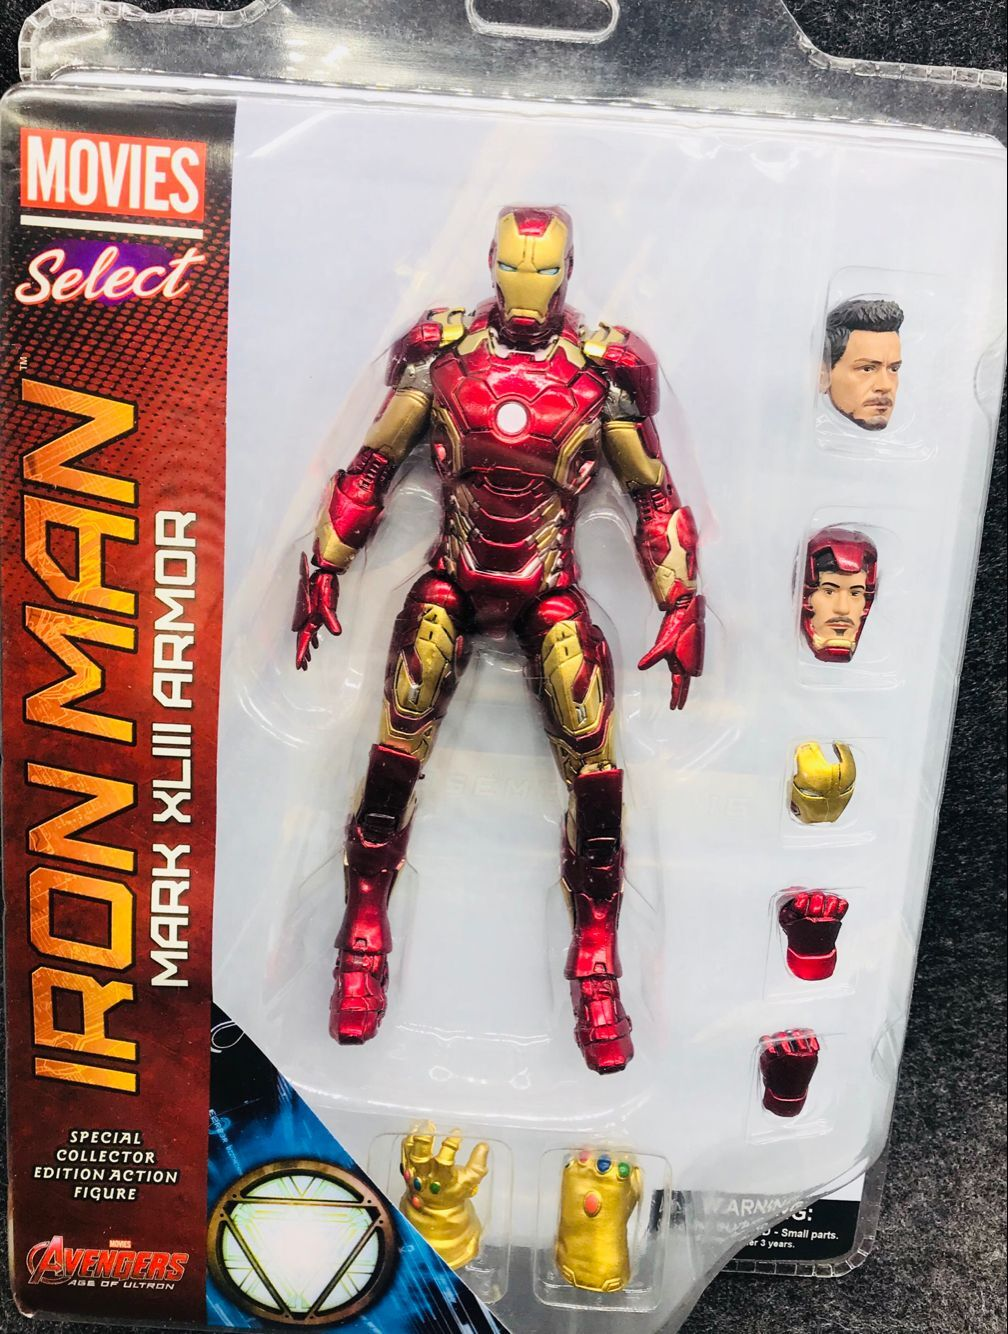 Original Marvel Select Avengers Ironman Mark 45 Super Hero Iron Man Action Figure Model Toys 18cm варочная панель индукционная gorenje iq634usc